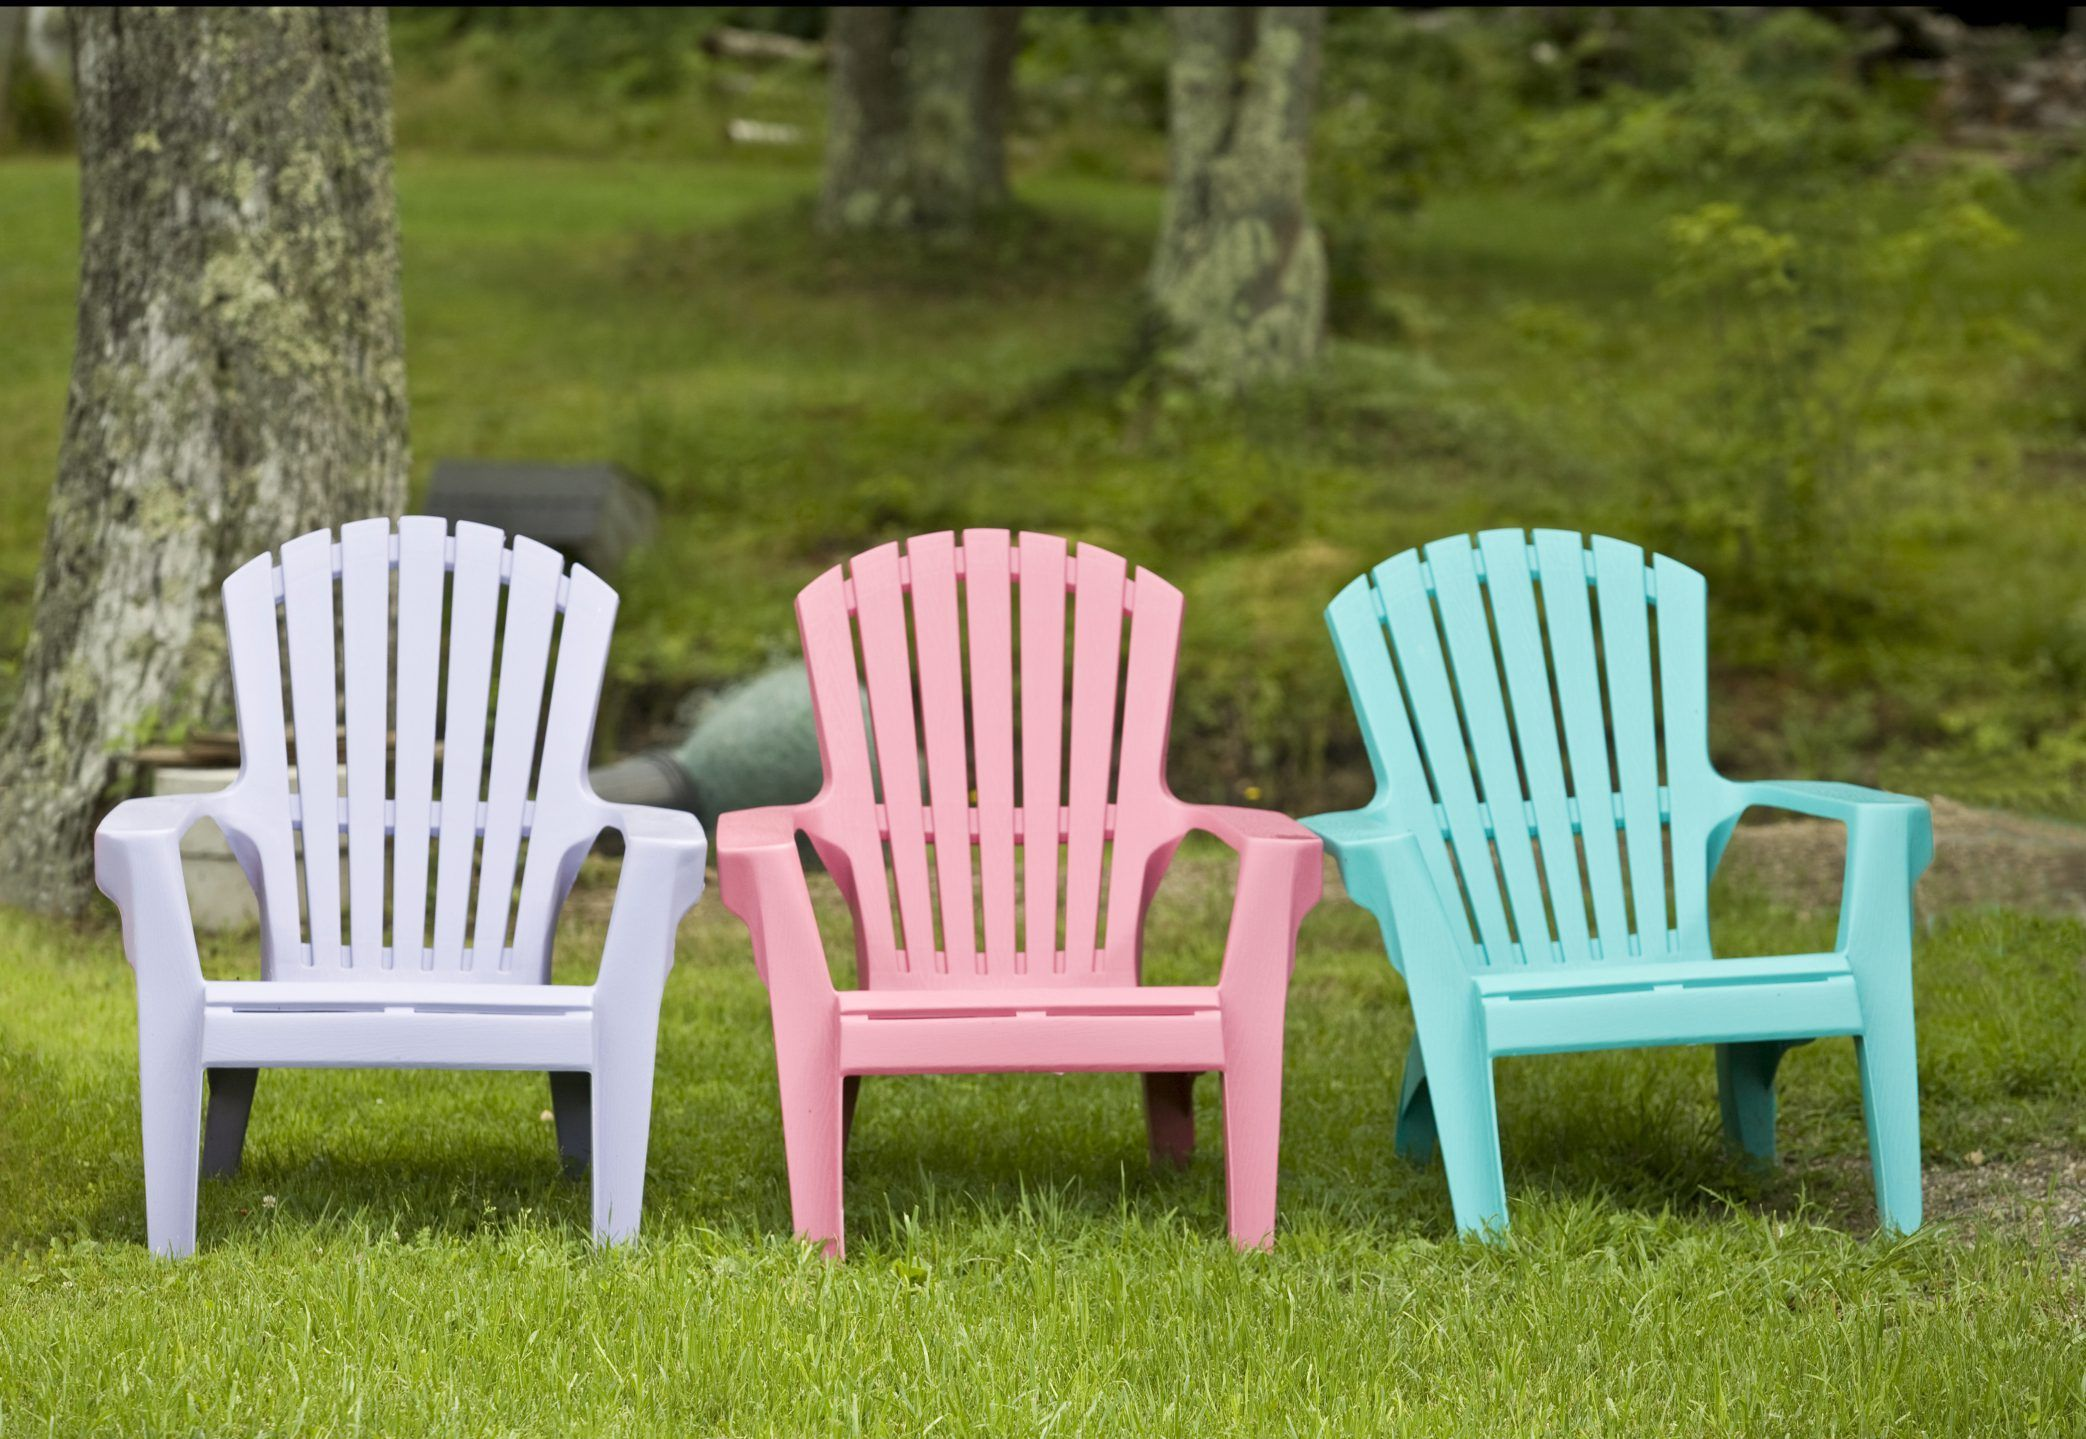 How To Paint Plastic Lawn Chairs Ehow Com Clean Outdoor Furniture Plastic Patio Furniture Plastic Garden Chairs